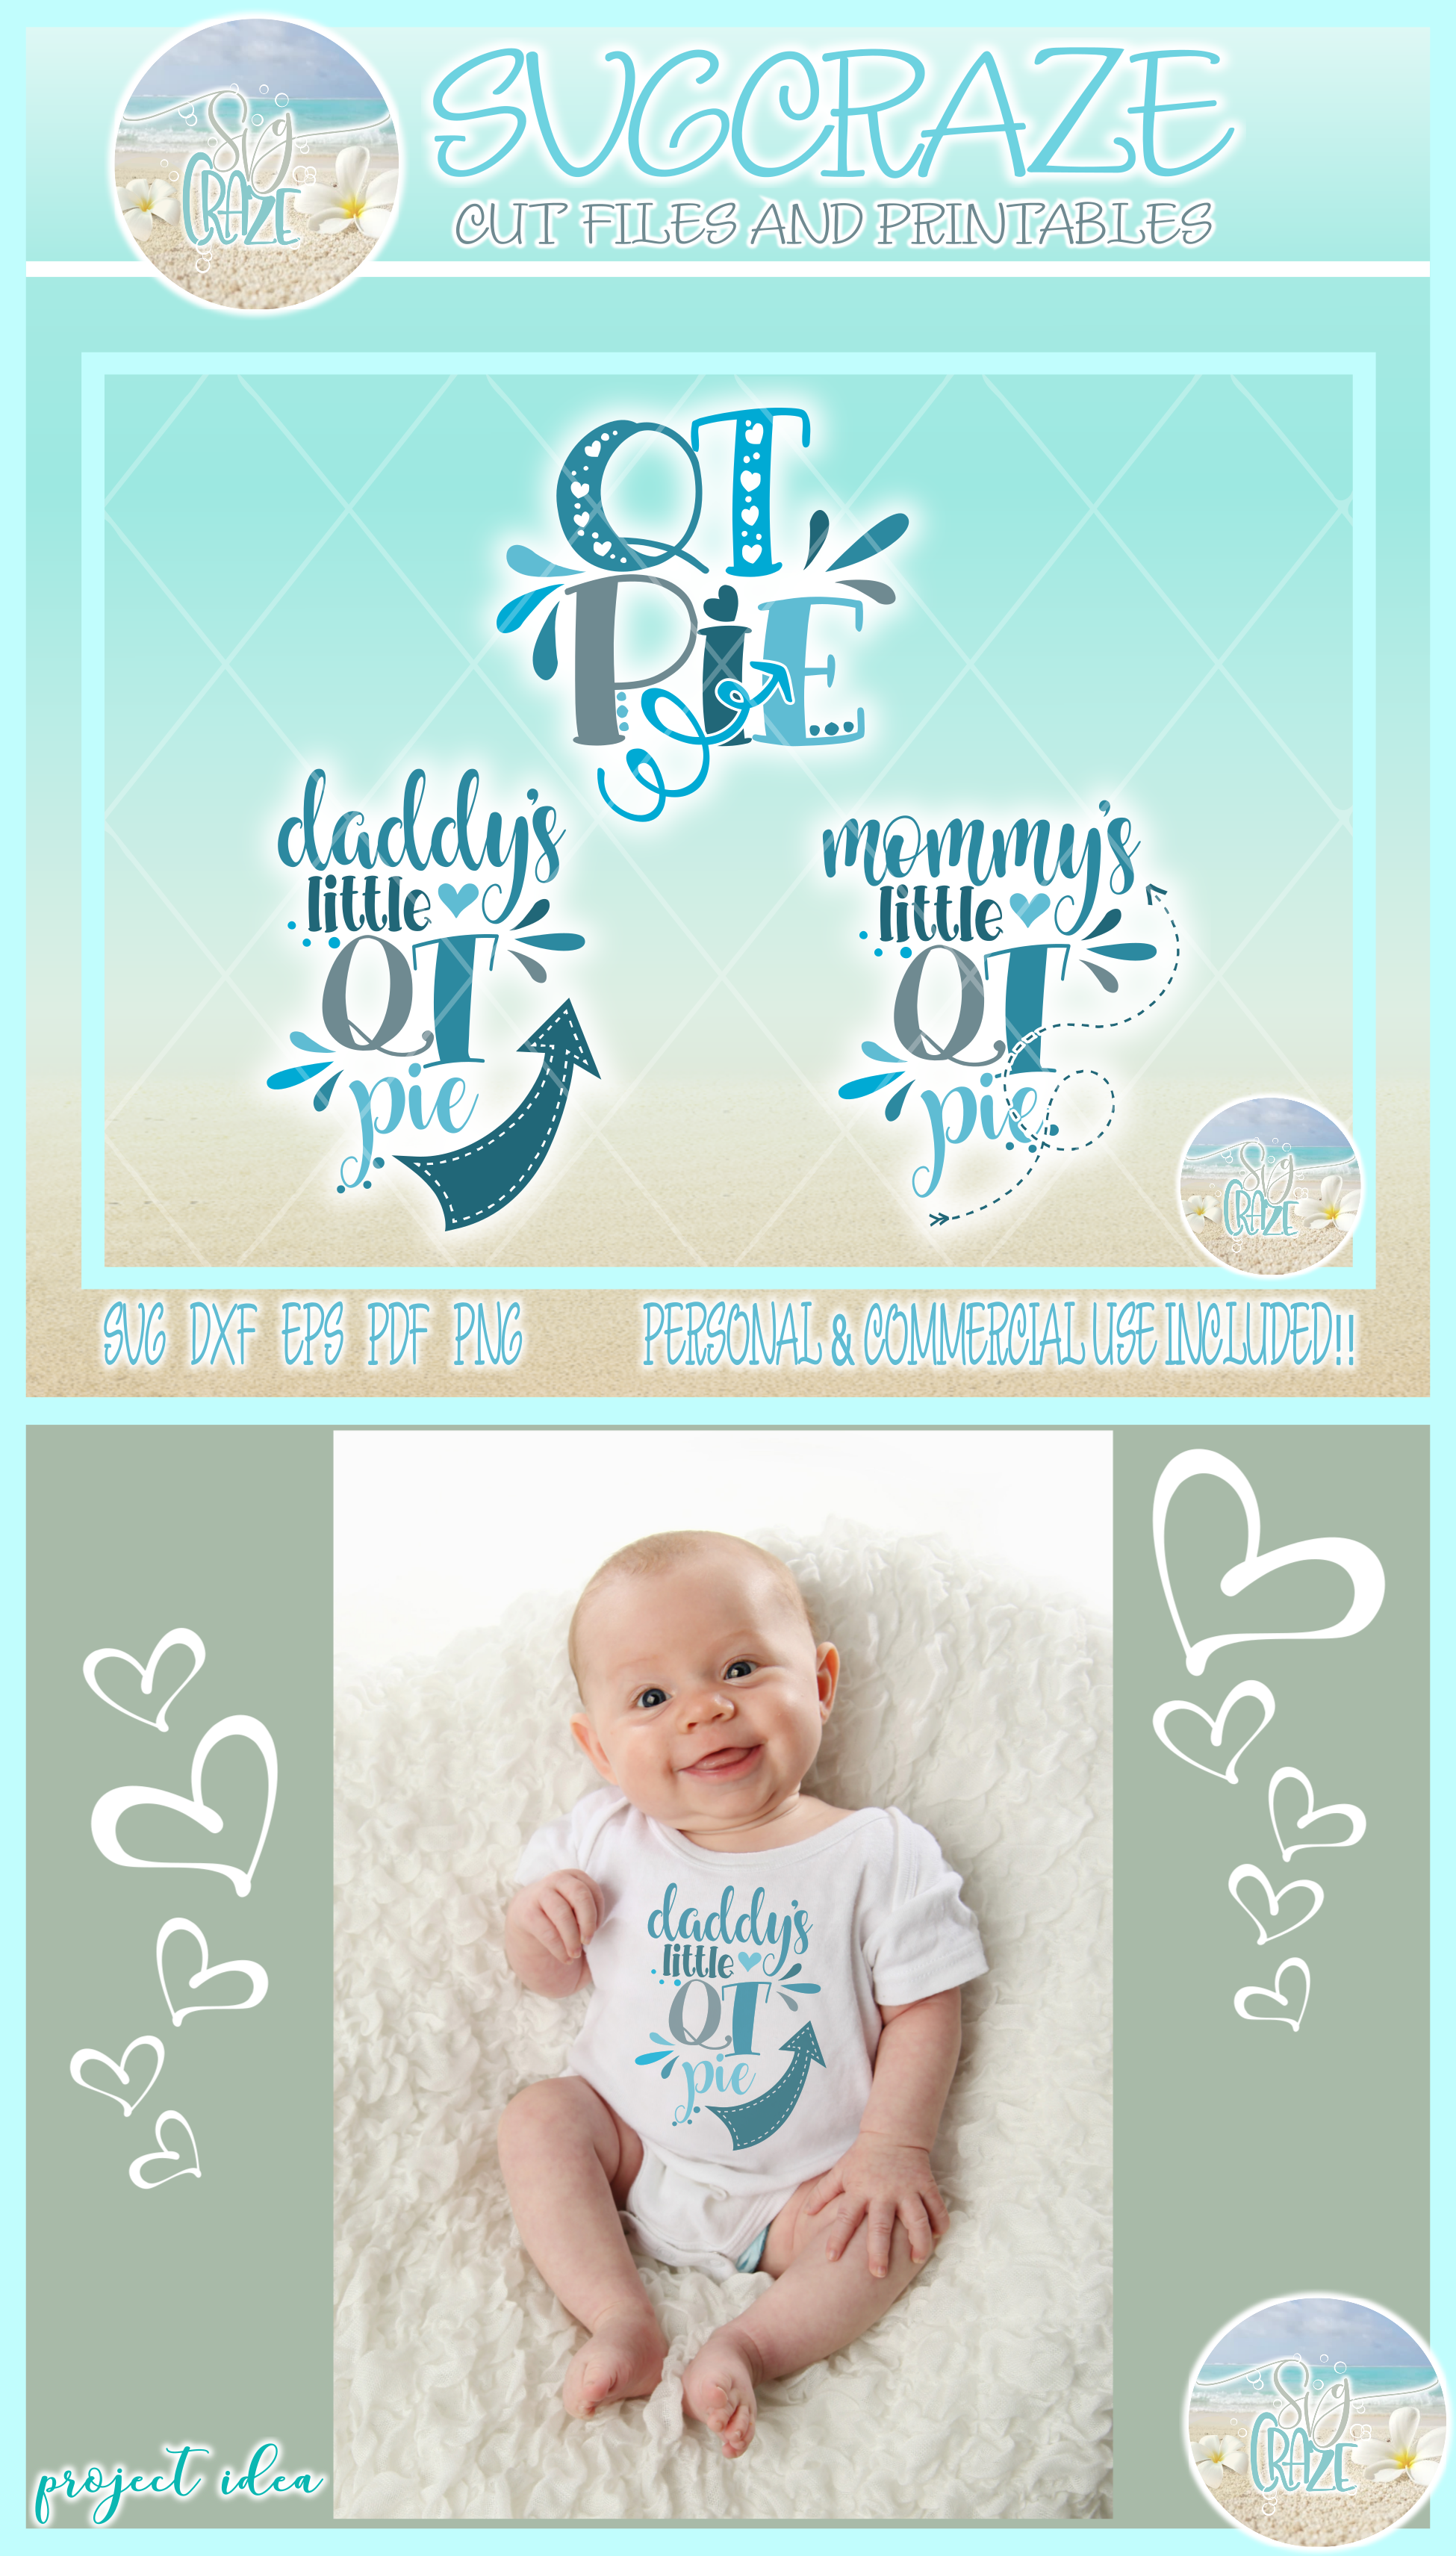 Mommy Daddy Qt Pie Quote Cute Baby Cutie Svg Dxf Eps Png Pdf